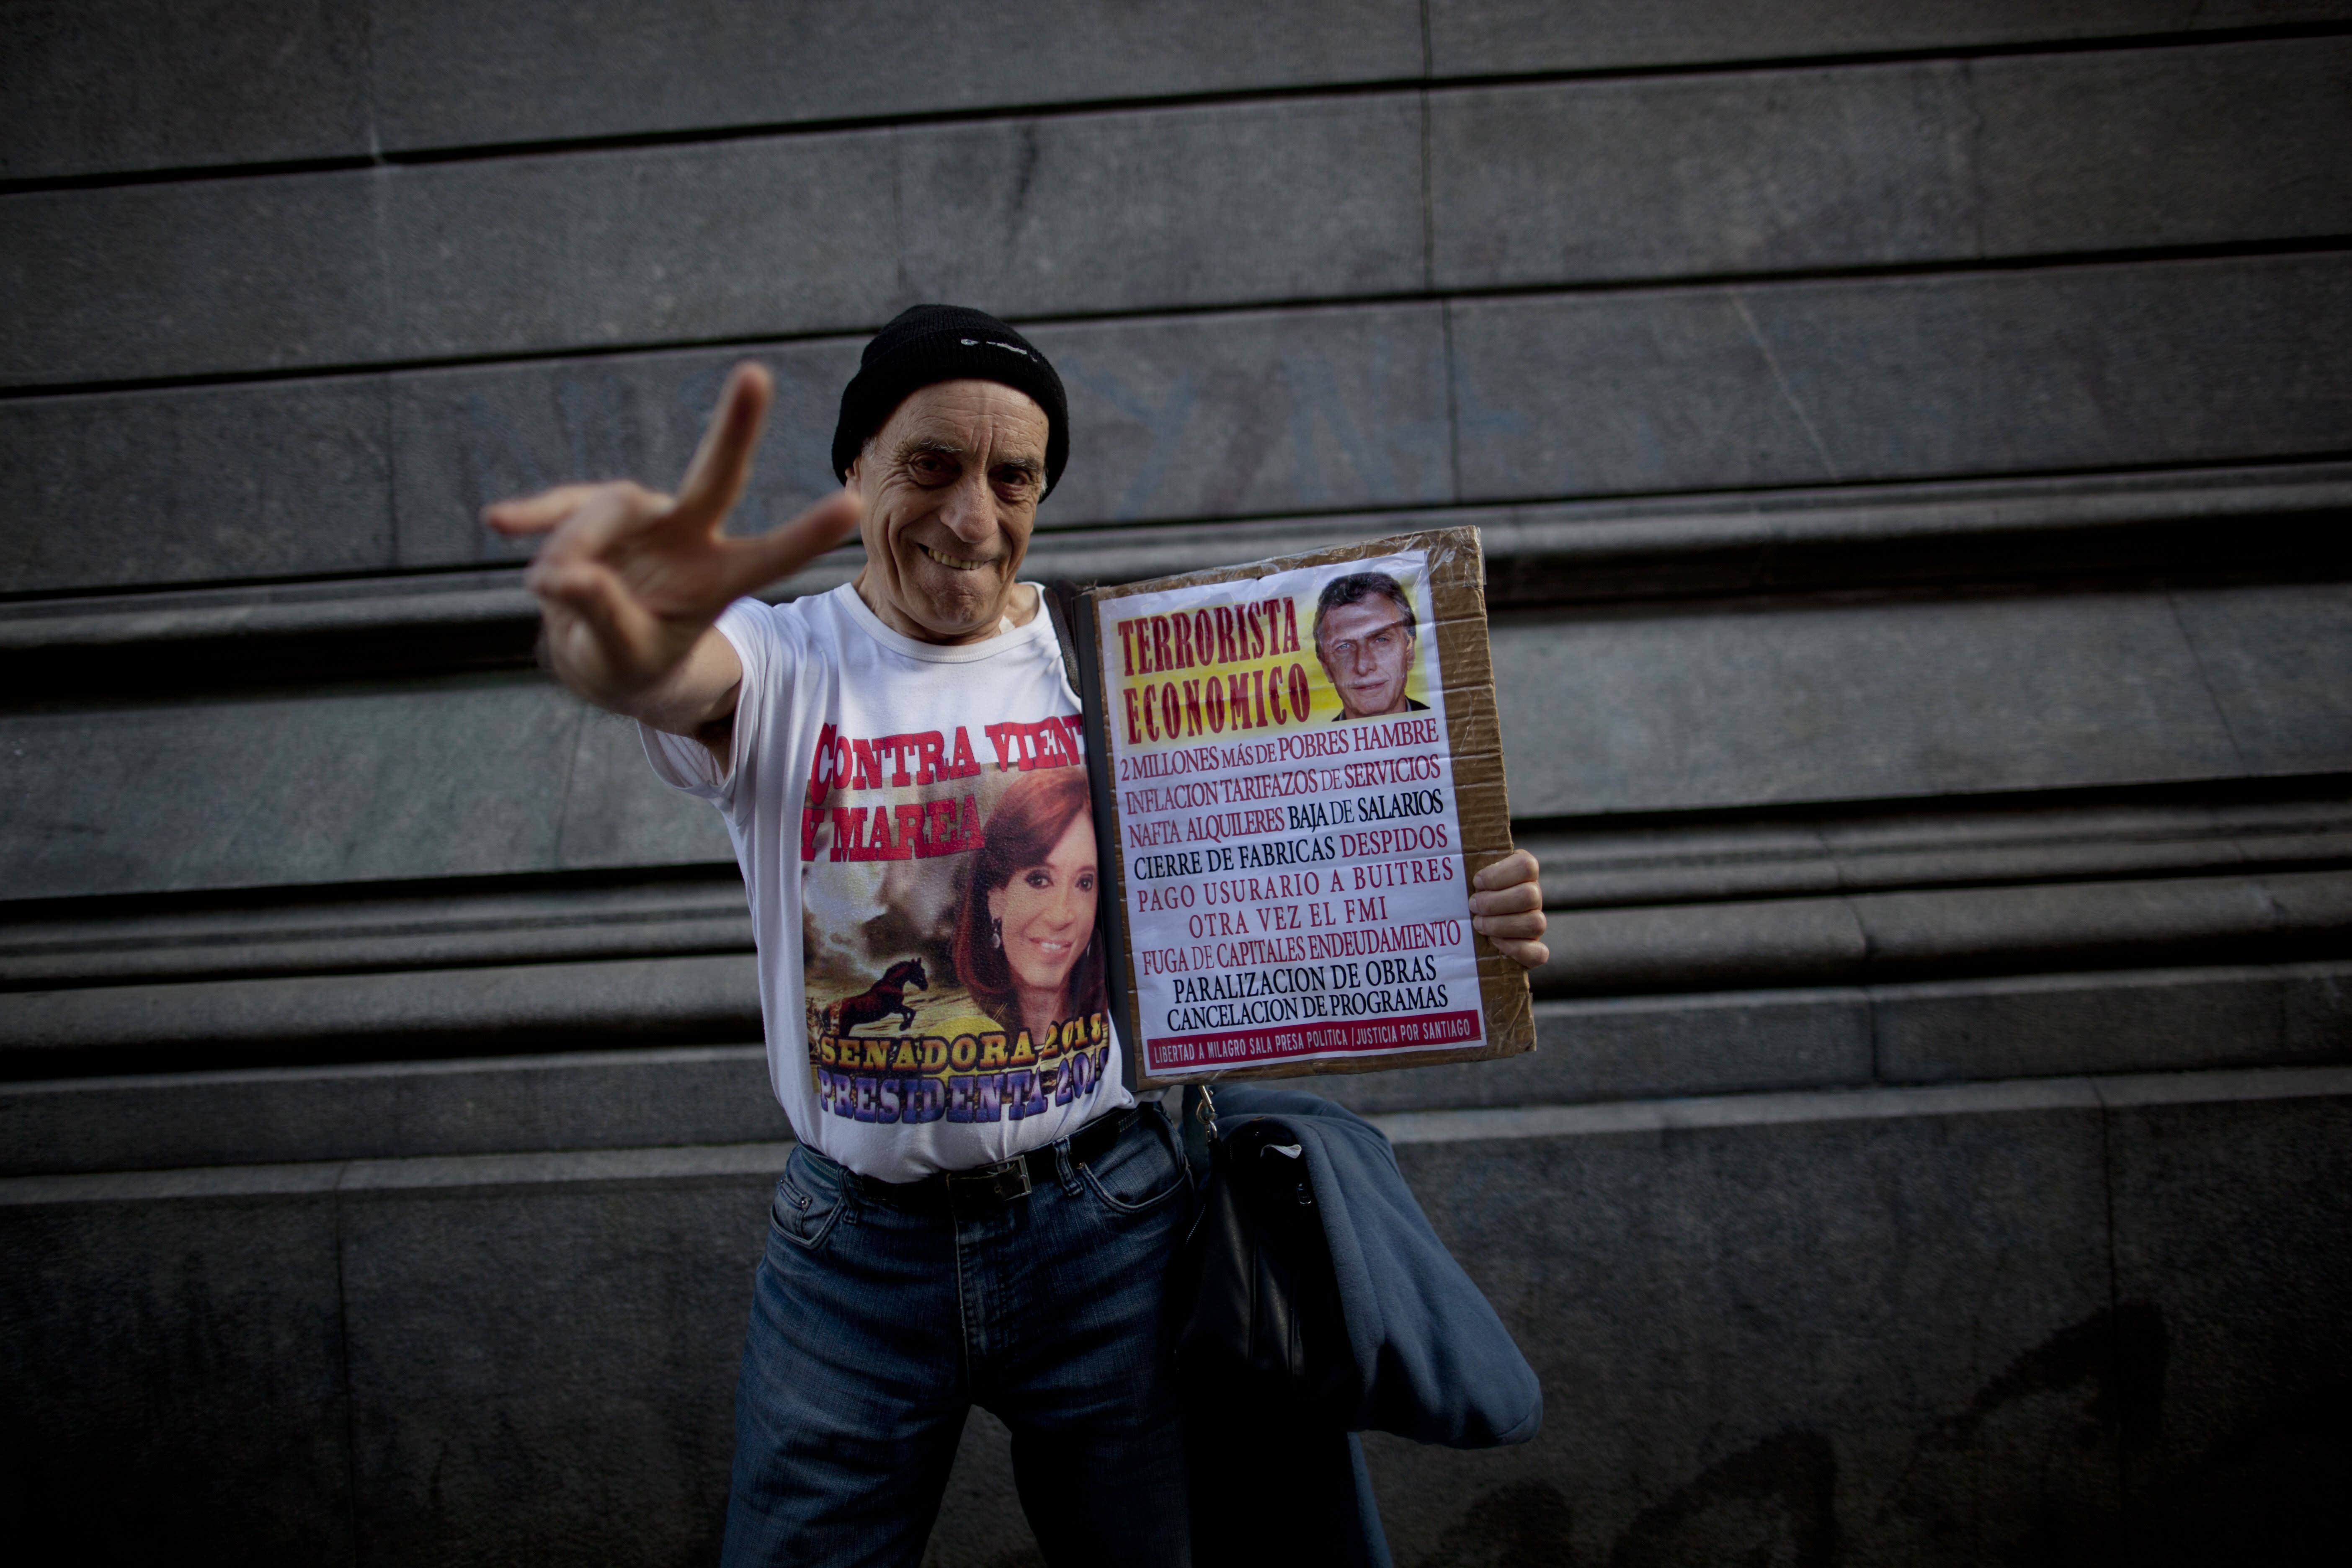 """In this Oct. 3, 2018 photo, philosophy professor Juan Carlos Amarfil, 67, strikes a pose wearing a T-shirt emblazoned with an image of former President Cristina Fernandez, as he holds a poster headlined, """"Economic terrorist"""" next to an image of President Maurcio Macri, during a demonstration demanding improved conditions for disabled retirees, in Buenos Aires, Argentina. Cries of support for Fernandez, who is now serving as a senator, continue to rise from crowds during protests against the austerity policies of Macri, the conservative who replaced her as leader of Argentina. (AP Photo/Natacha Pisarenko)"""